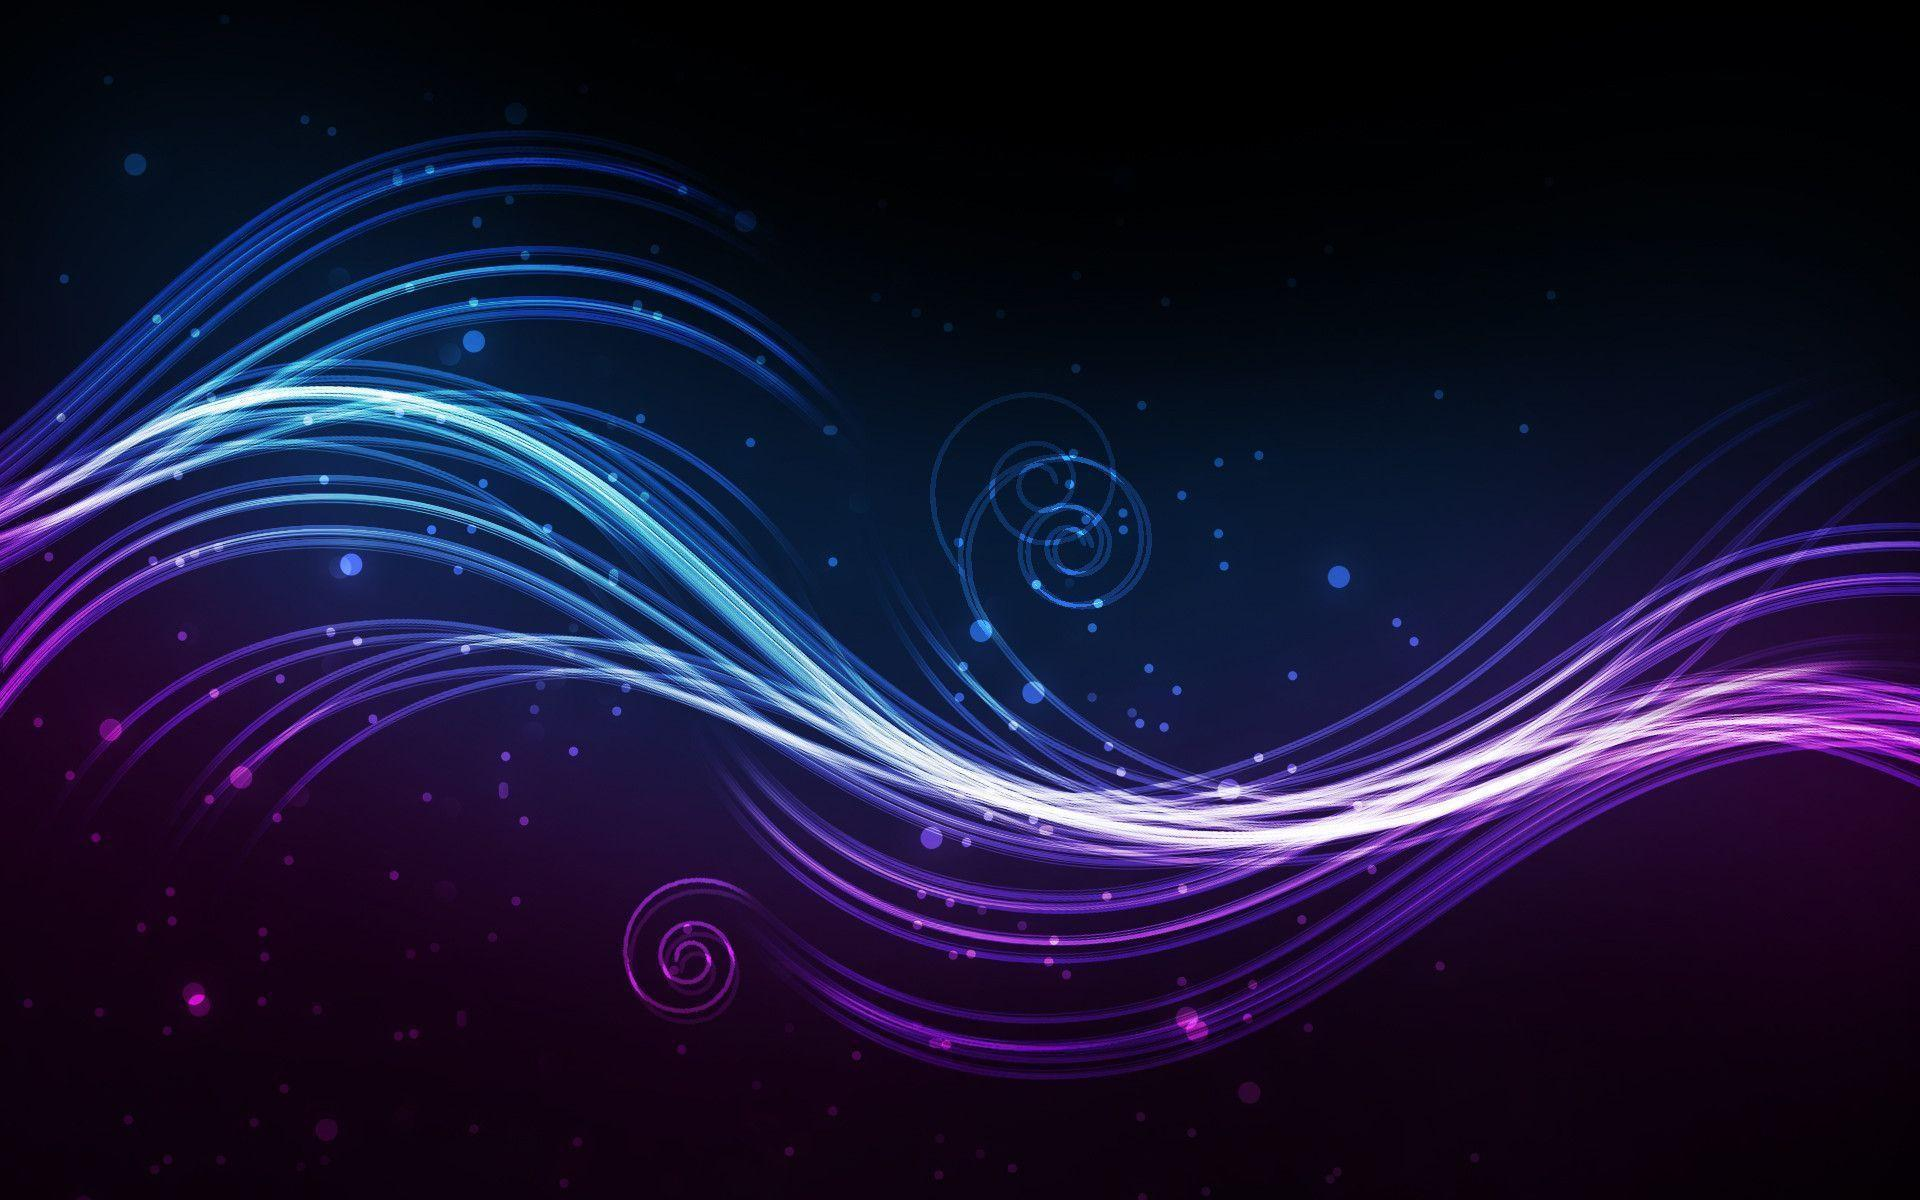 Blue Purple Abstract Wallpapers Hd 1080P 11 HD Wallpapers